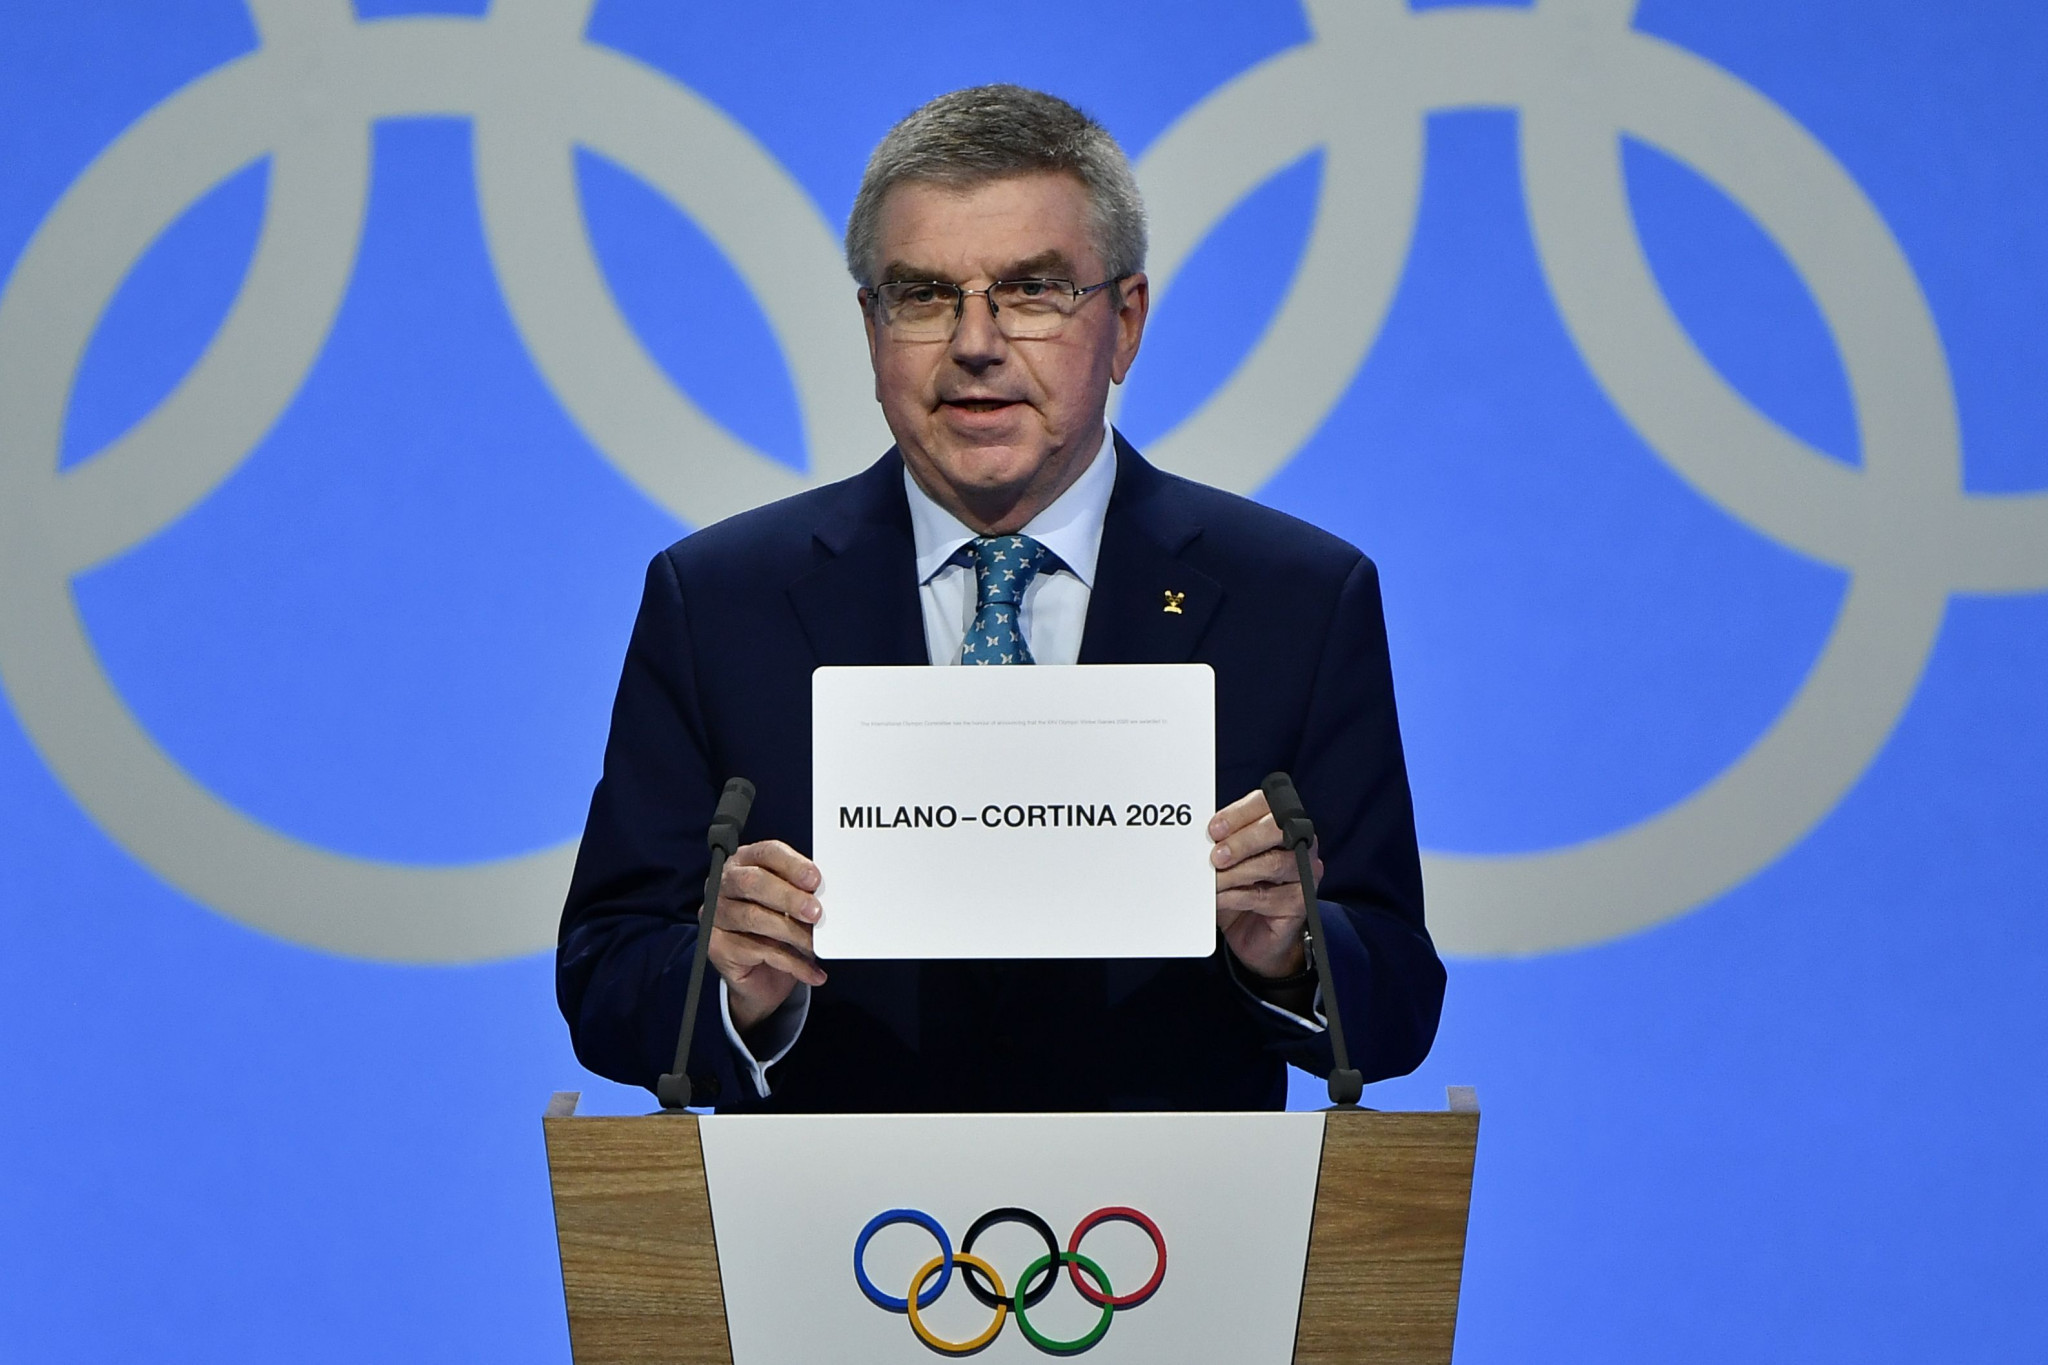 Swedish PM Lofven says country ready to host 2026 Winter Olympic Games